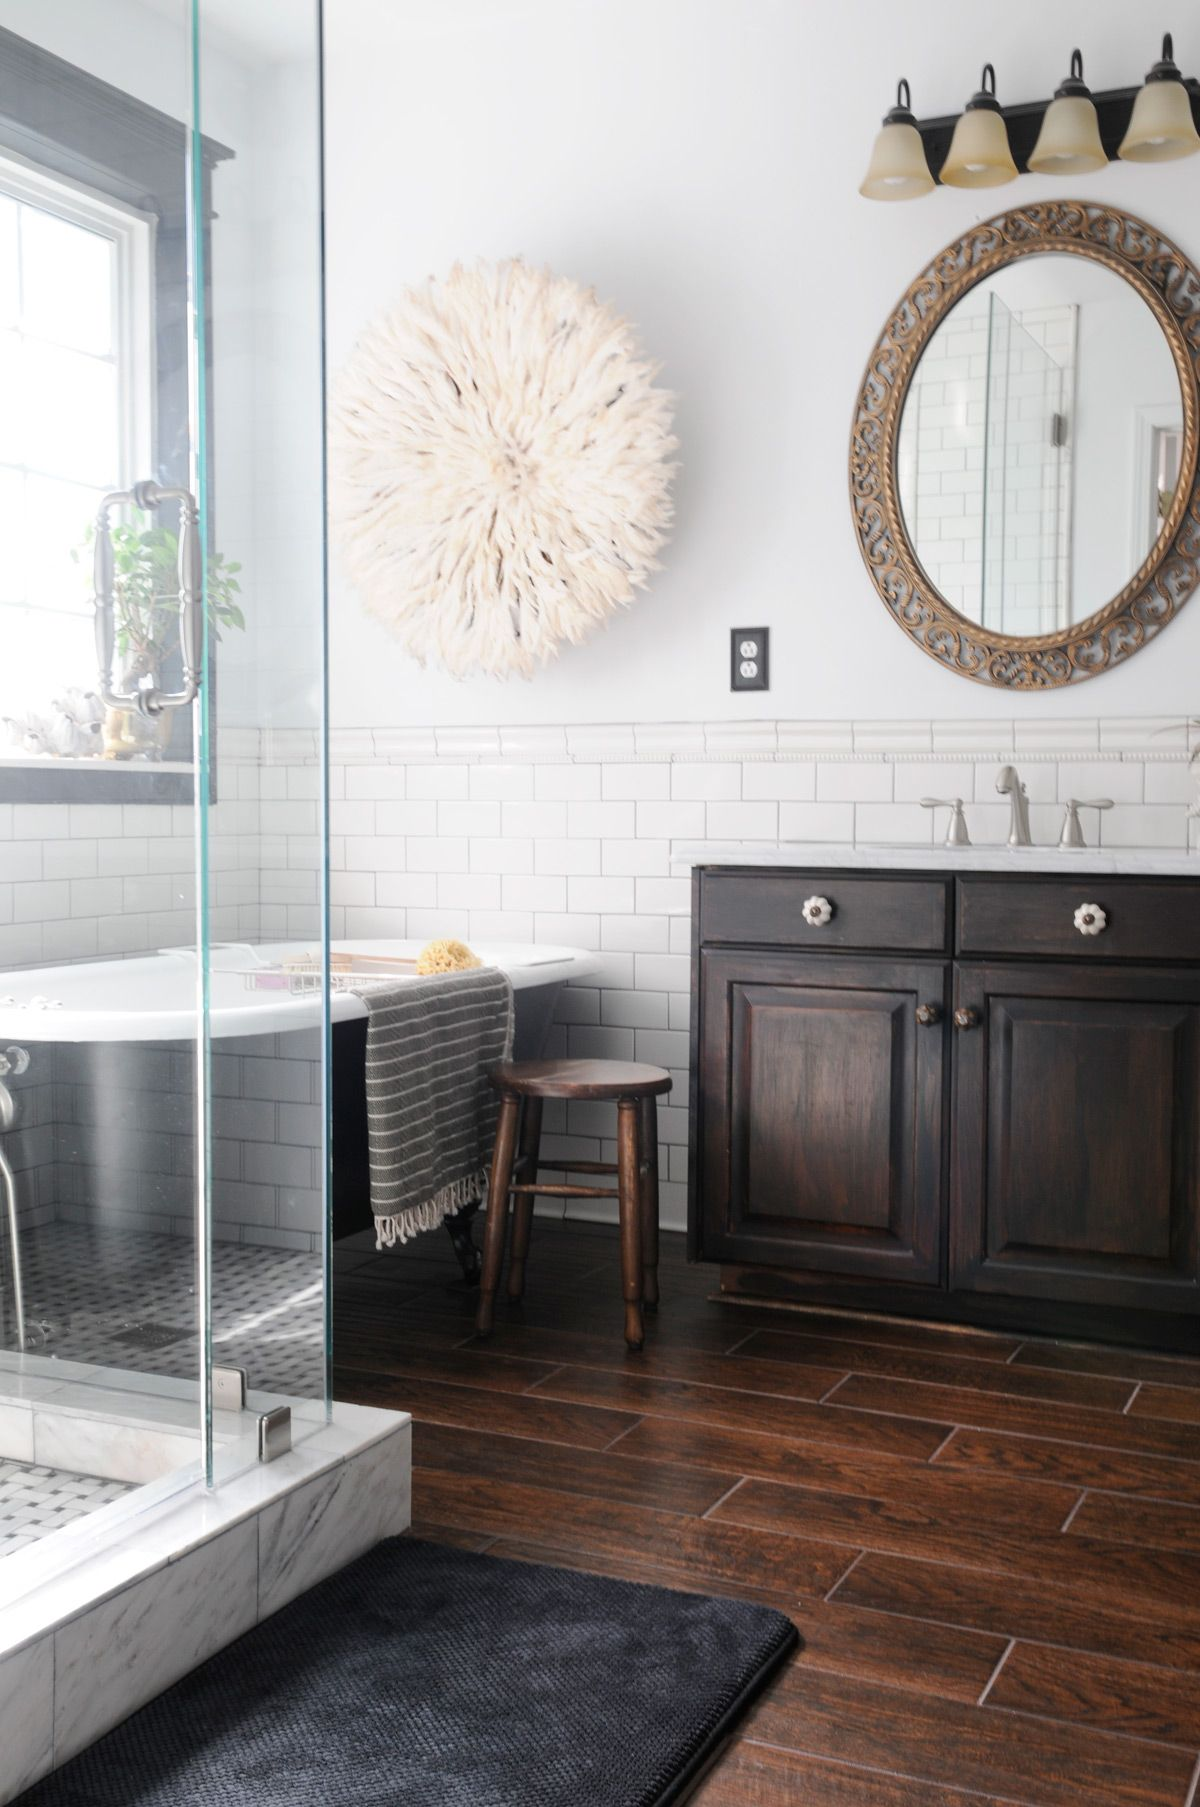 Similar coloring (floor,tile,vanity) to new master bath | Home decor ...